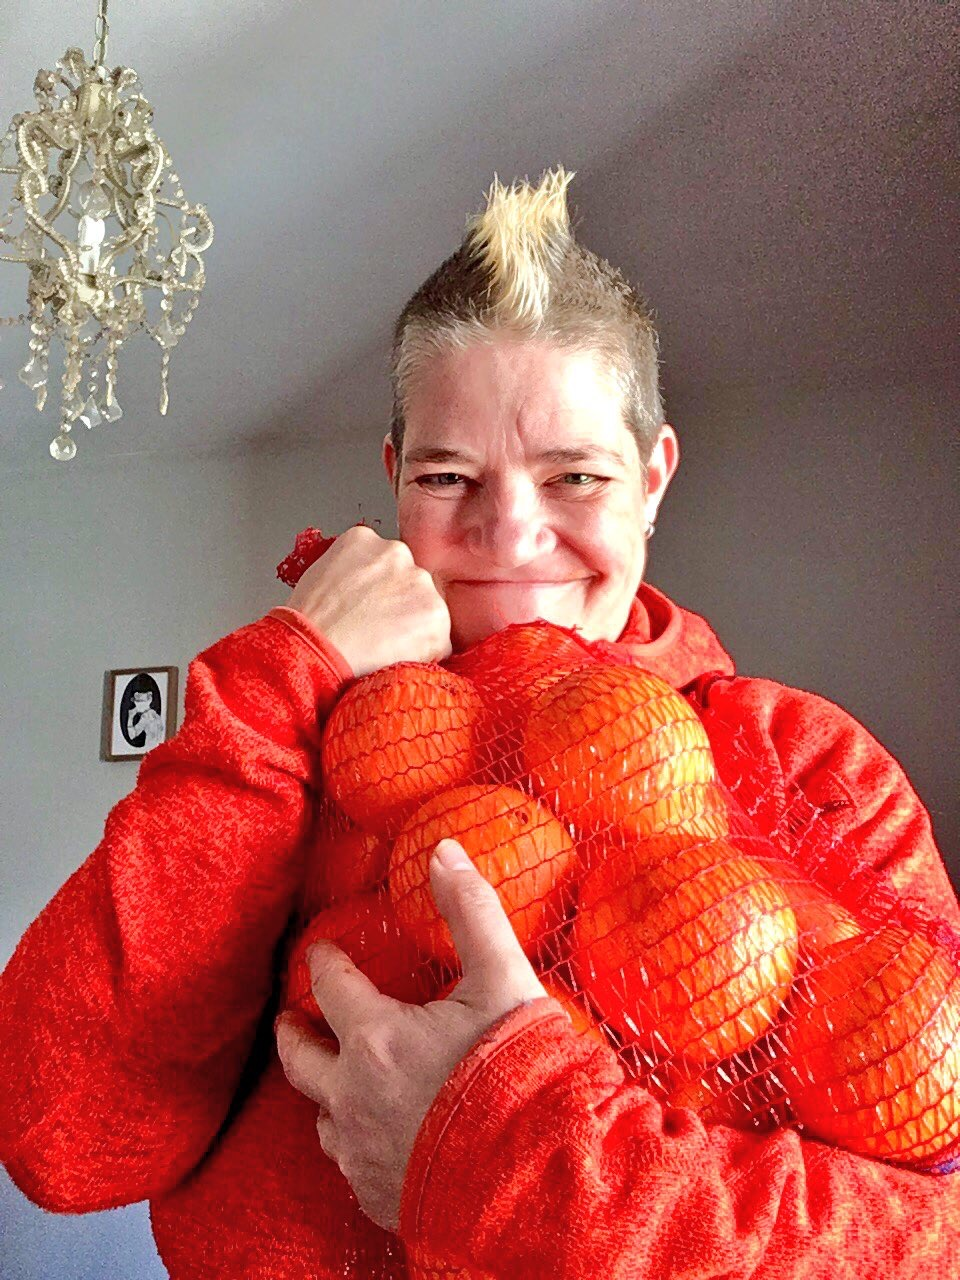 Al Orange smiling at the camera. She has a mohawk, and is holding a big bag of oranges up to her chest. She is in a room with a chandelier and a framed piece of artwork behind her.